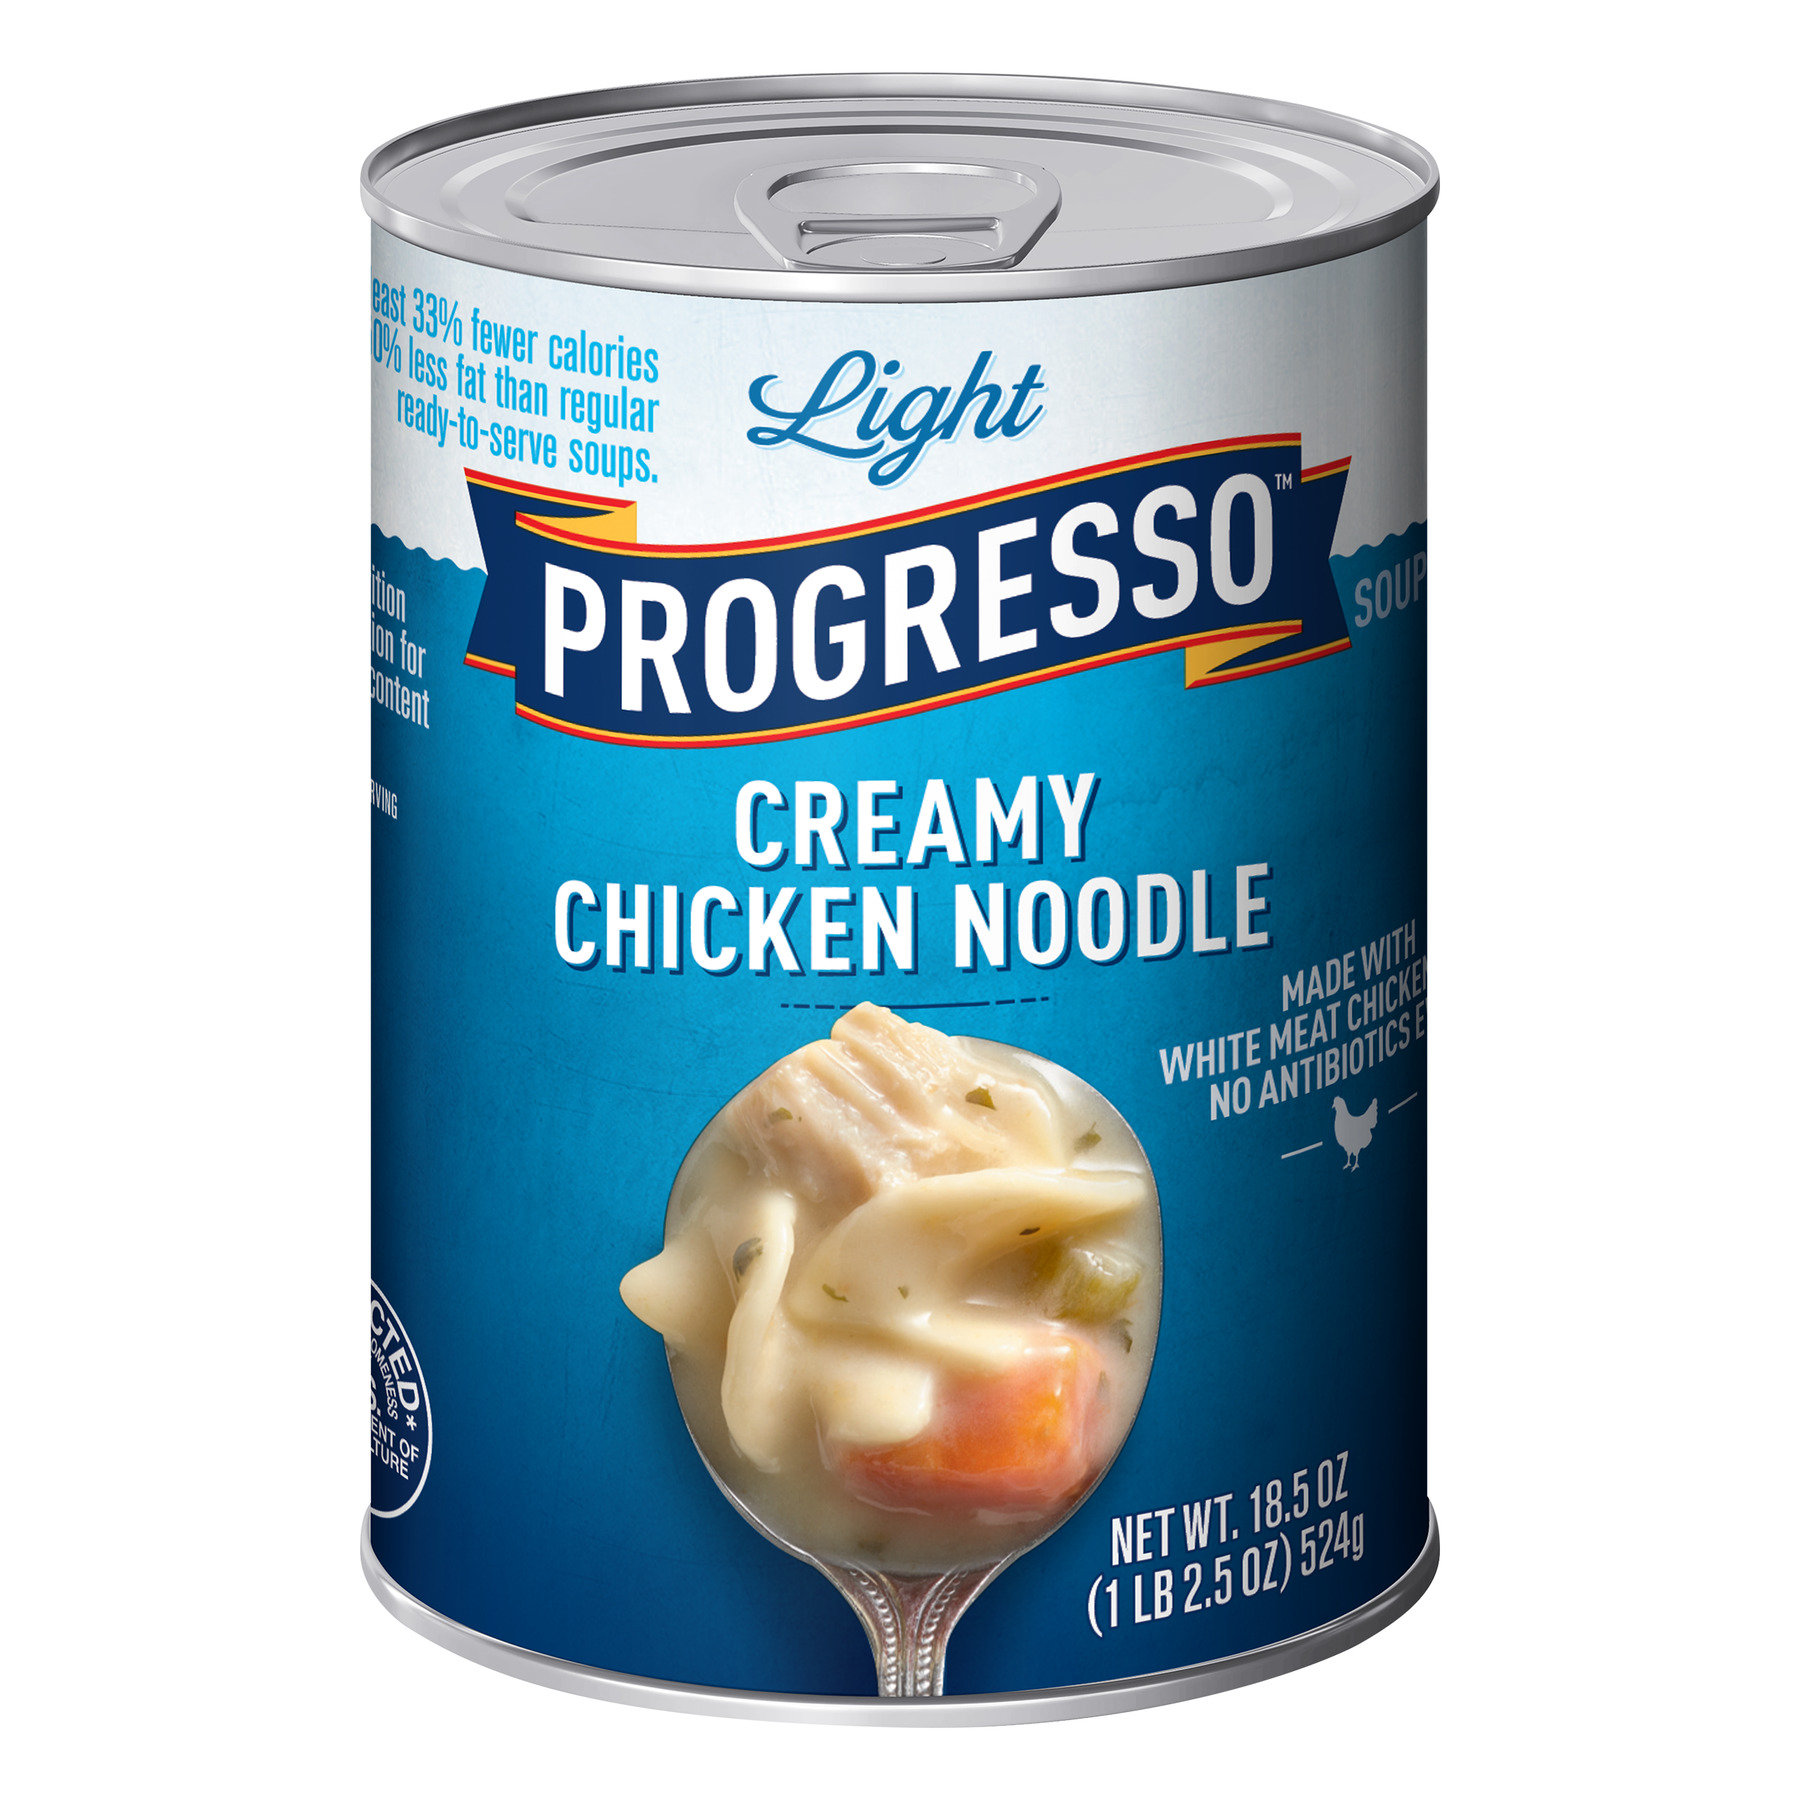 Progresso Light Creamy Chicken Noodle Soup, 18.5 Oz Can